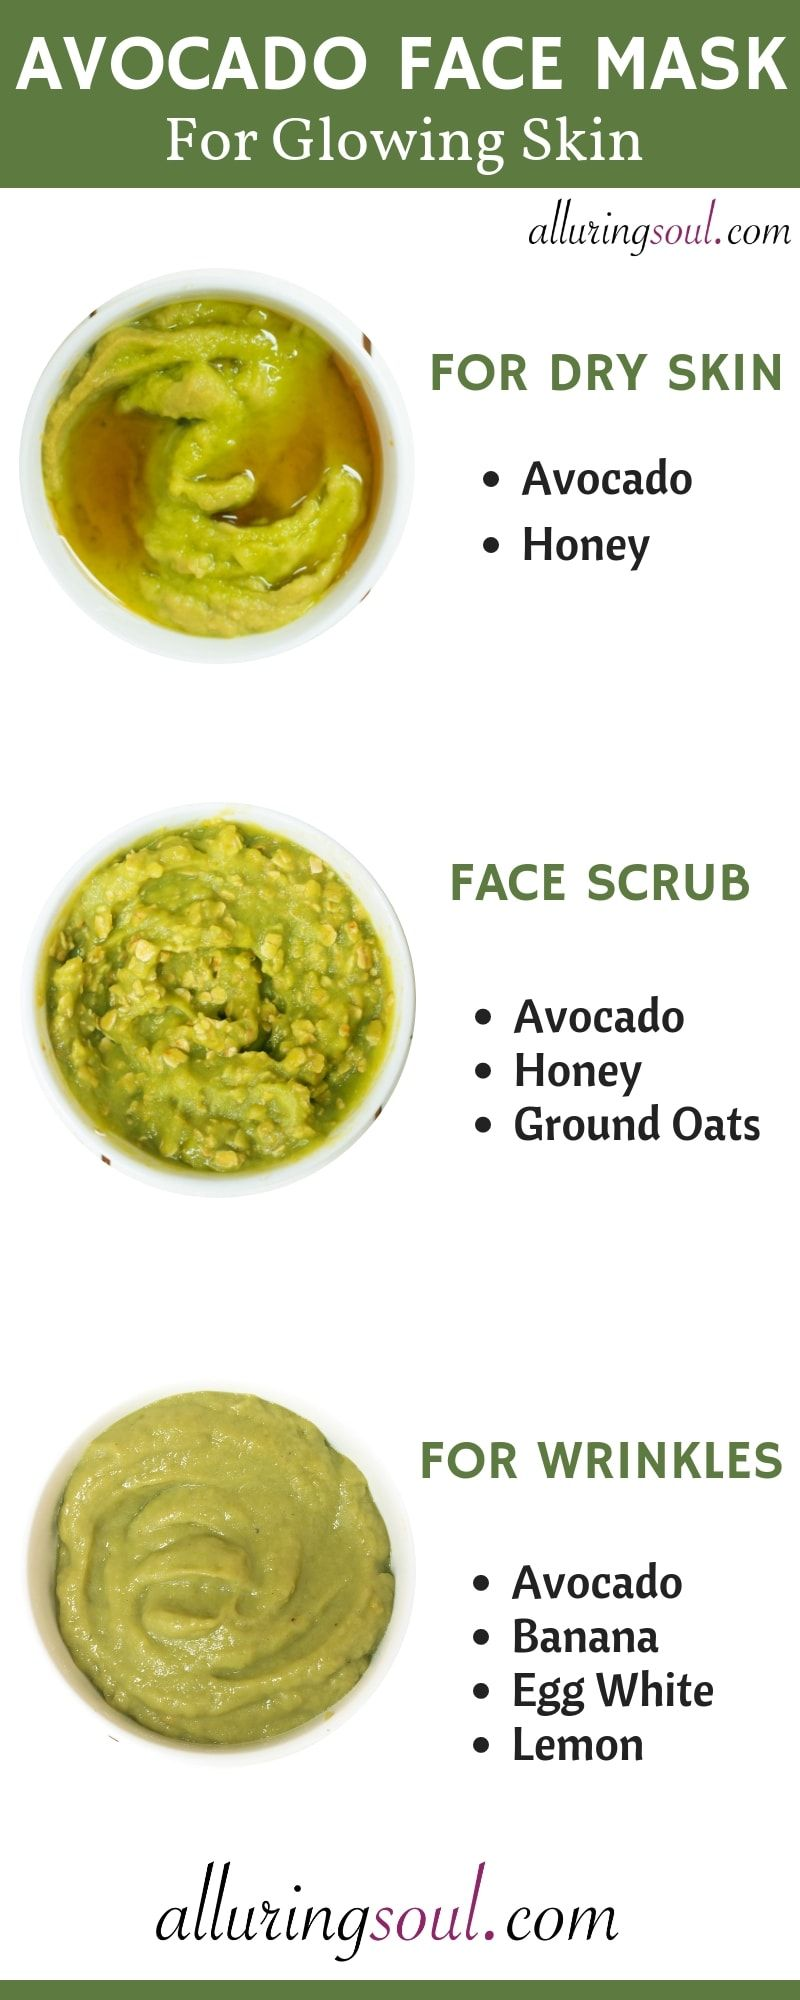 3 Diy Avocado Face Mask For Dry Aging Dull Skin Avocado Face Mask Acne Face Mask Dull Skin